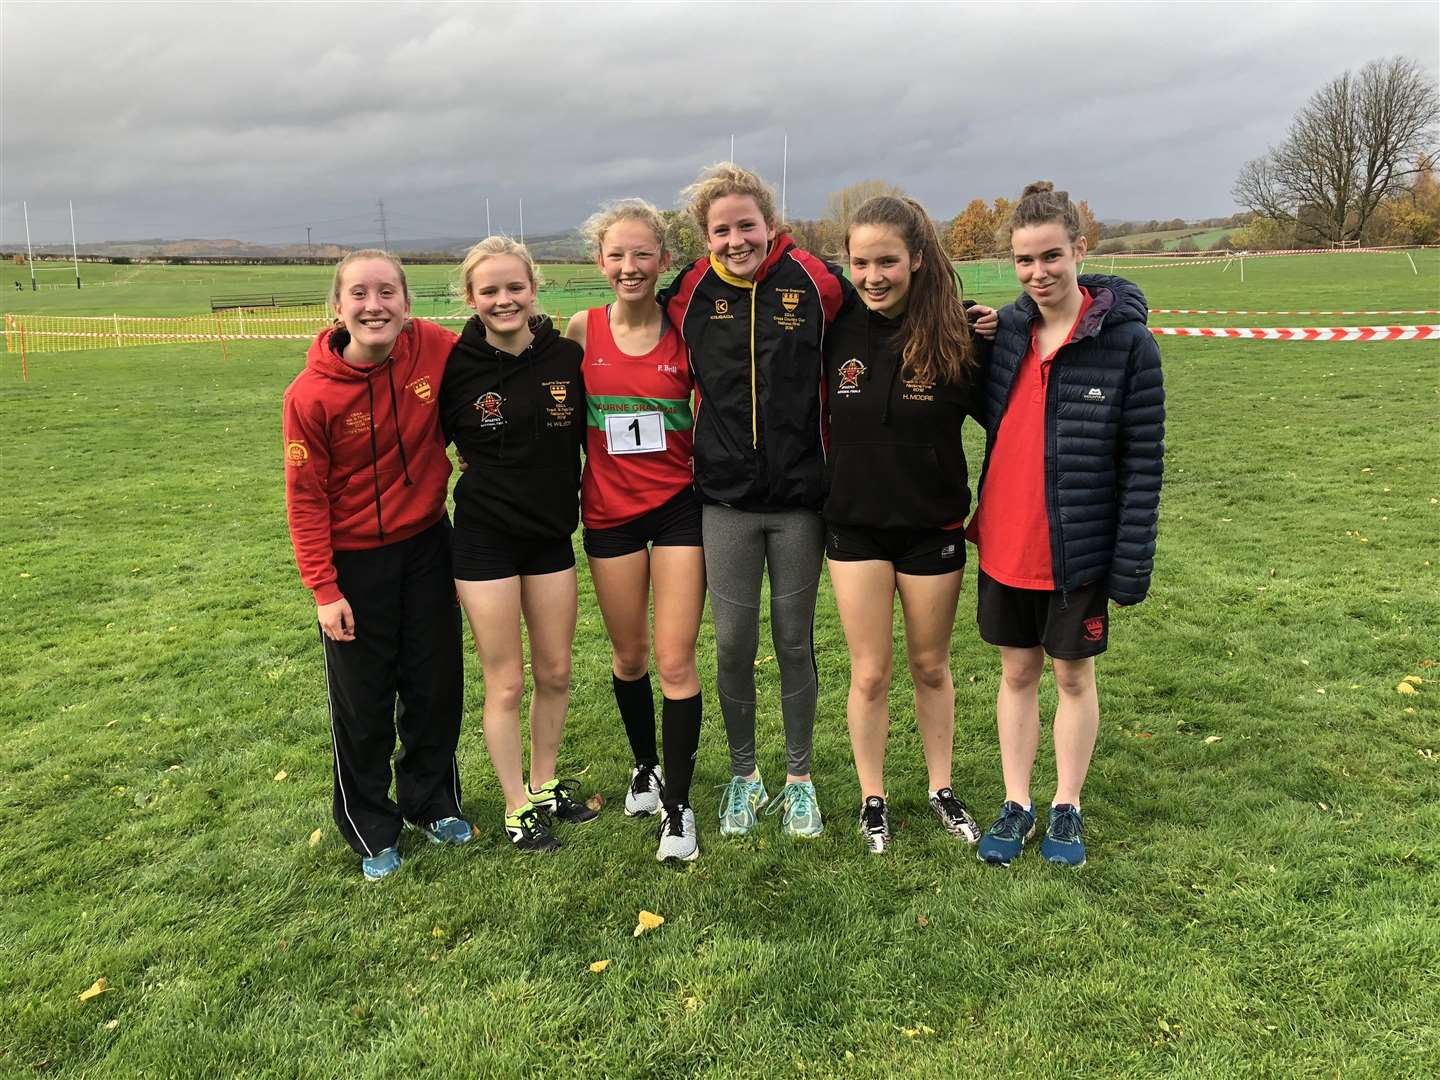 Bourne Grammar School at the regional cross-country championships. (5362462)